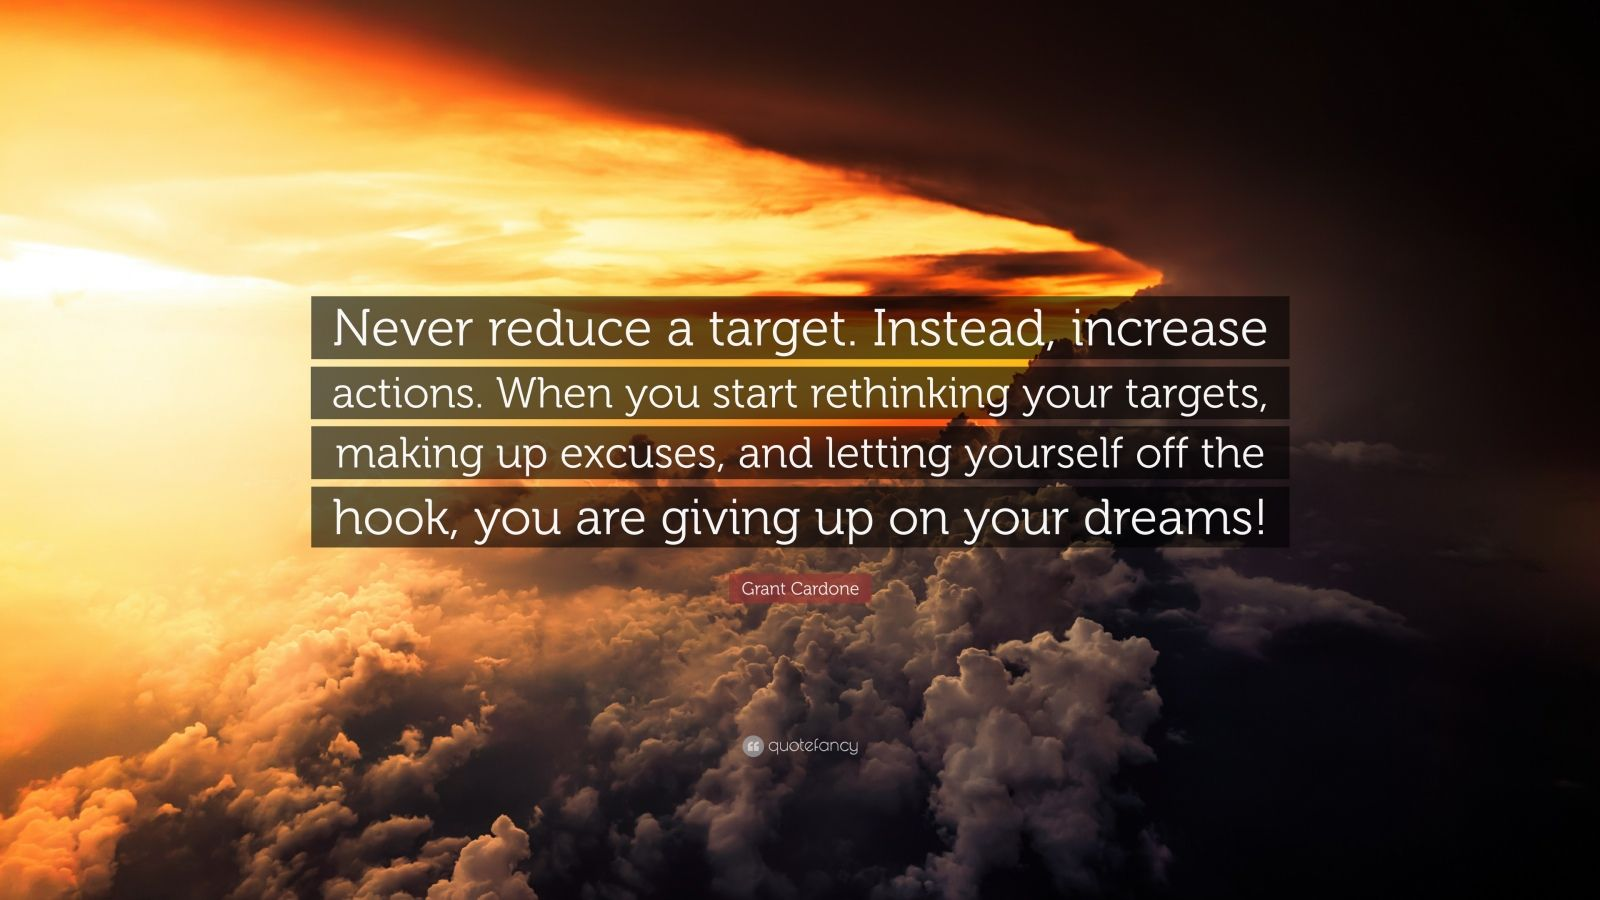 "Grant Cardone Quote: ""Never reduce a target. Instead, increase actions. When you start rethinking your targets, making up excuses, and letting yourself off the hook, you are giving up on your dreams!"""